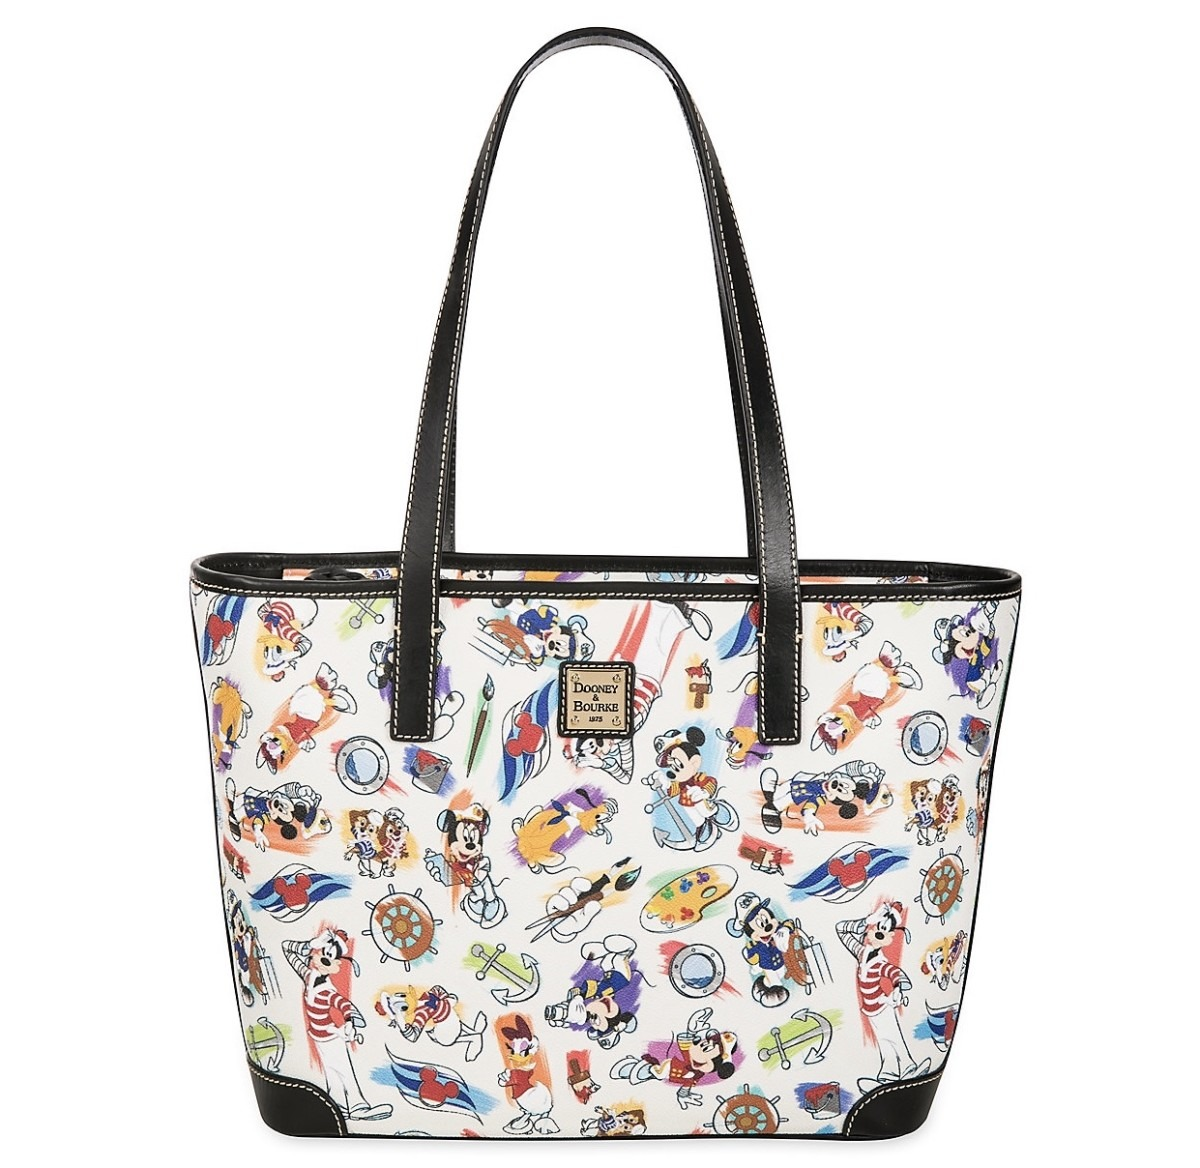 New Disney Dooney & Bourke Handbags Now on shopDisney! 2